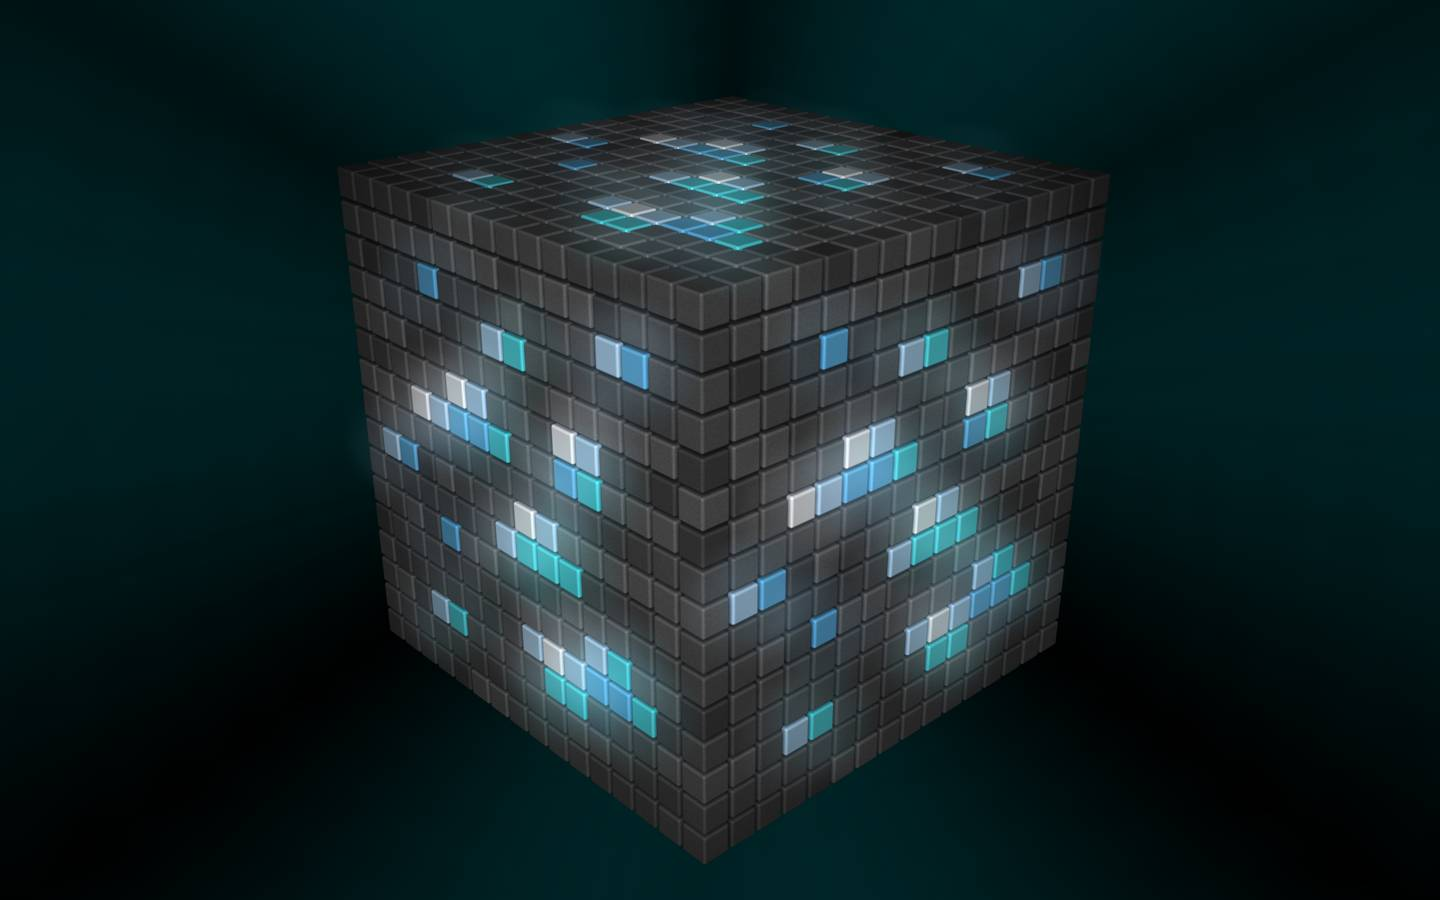 Minecraft Wallpaper For Bedrooms Minecraft Wallpapers For Walls Wallpaper Cave